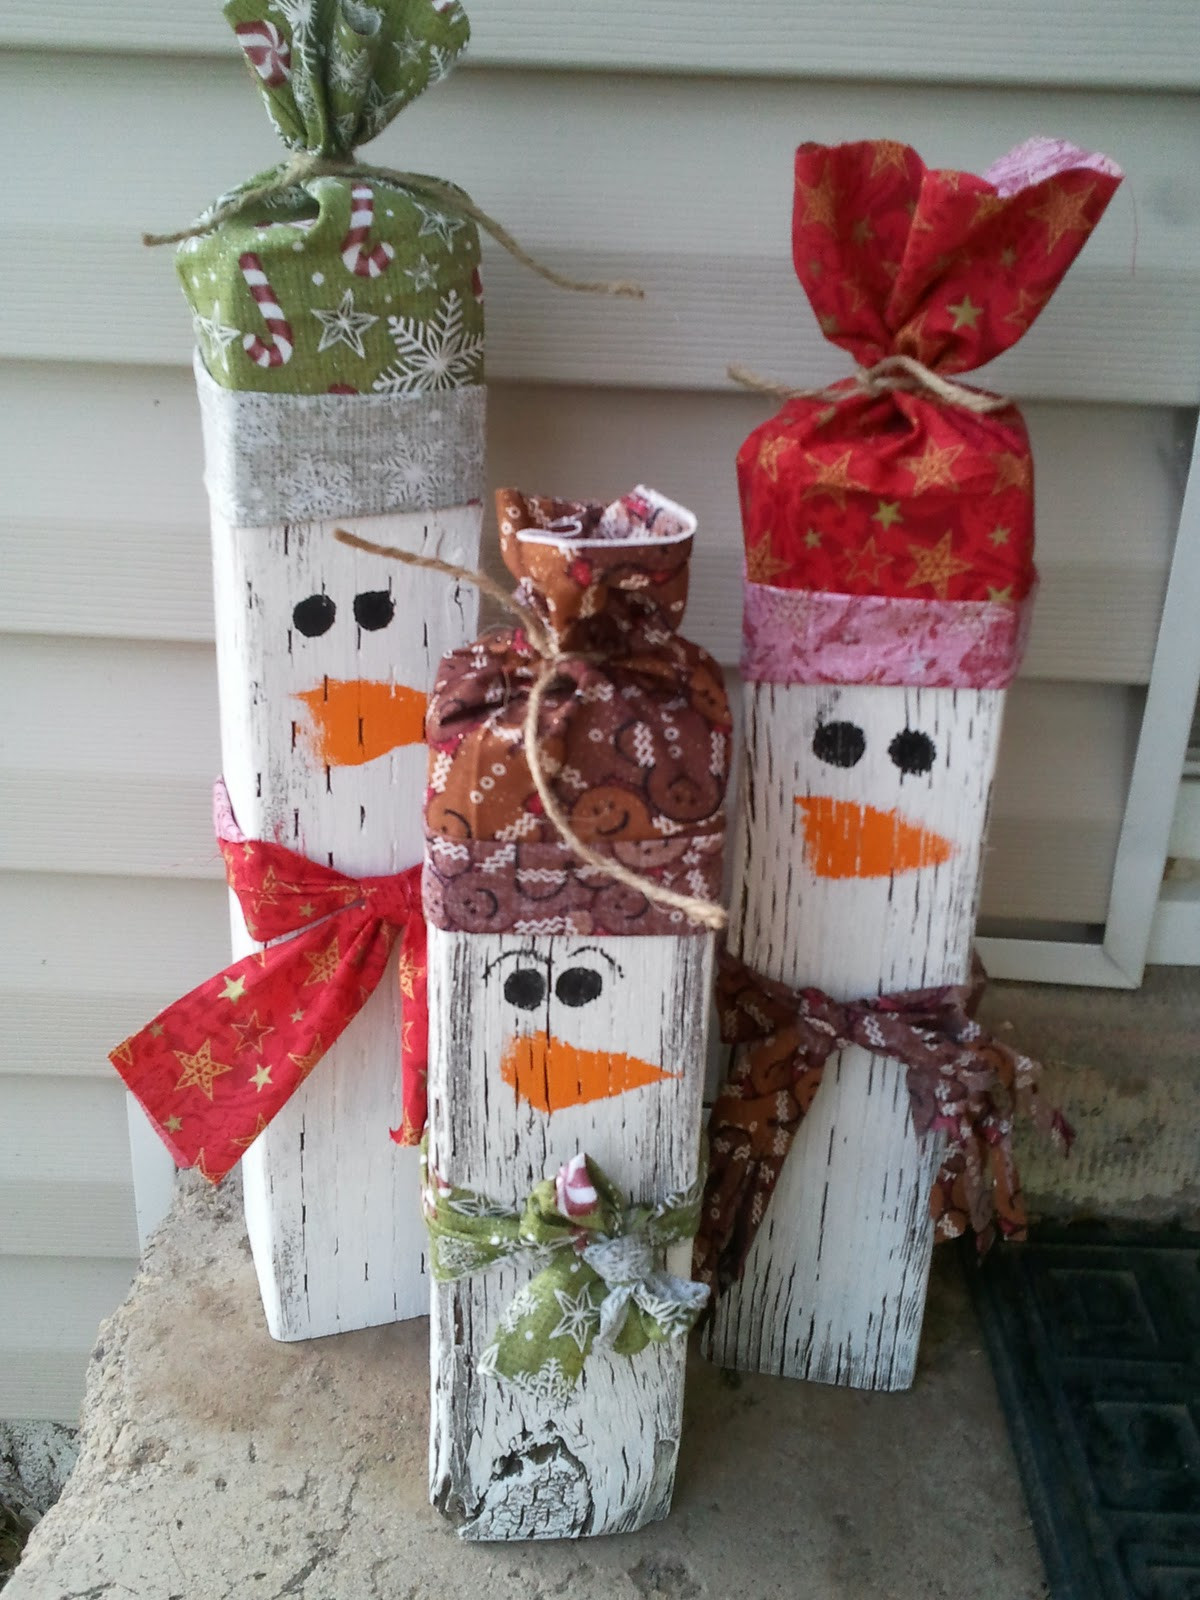 Best ideas about DIY Christmas Ideas . Save or Pin Always Something 10 DIY Christmas Decor Ideas Now.